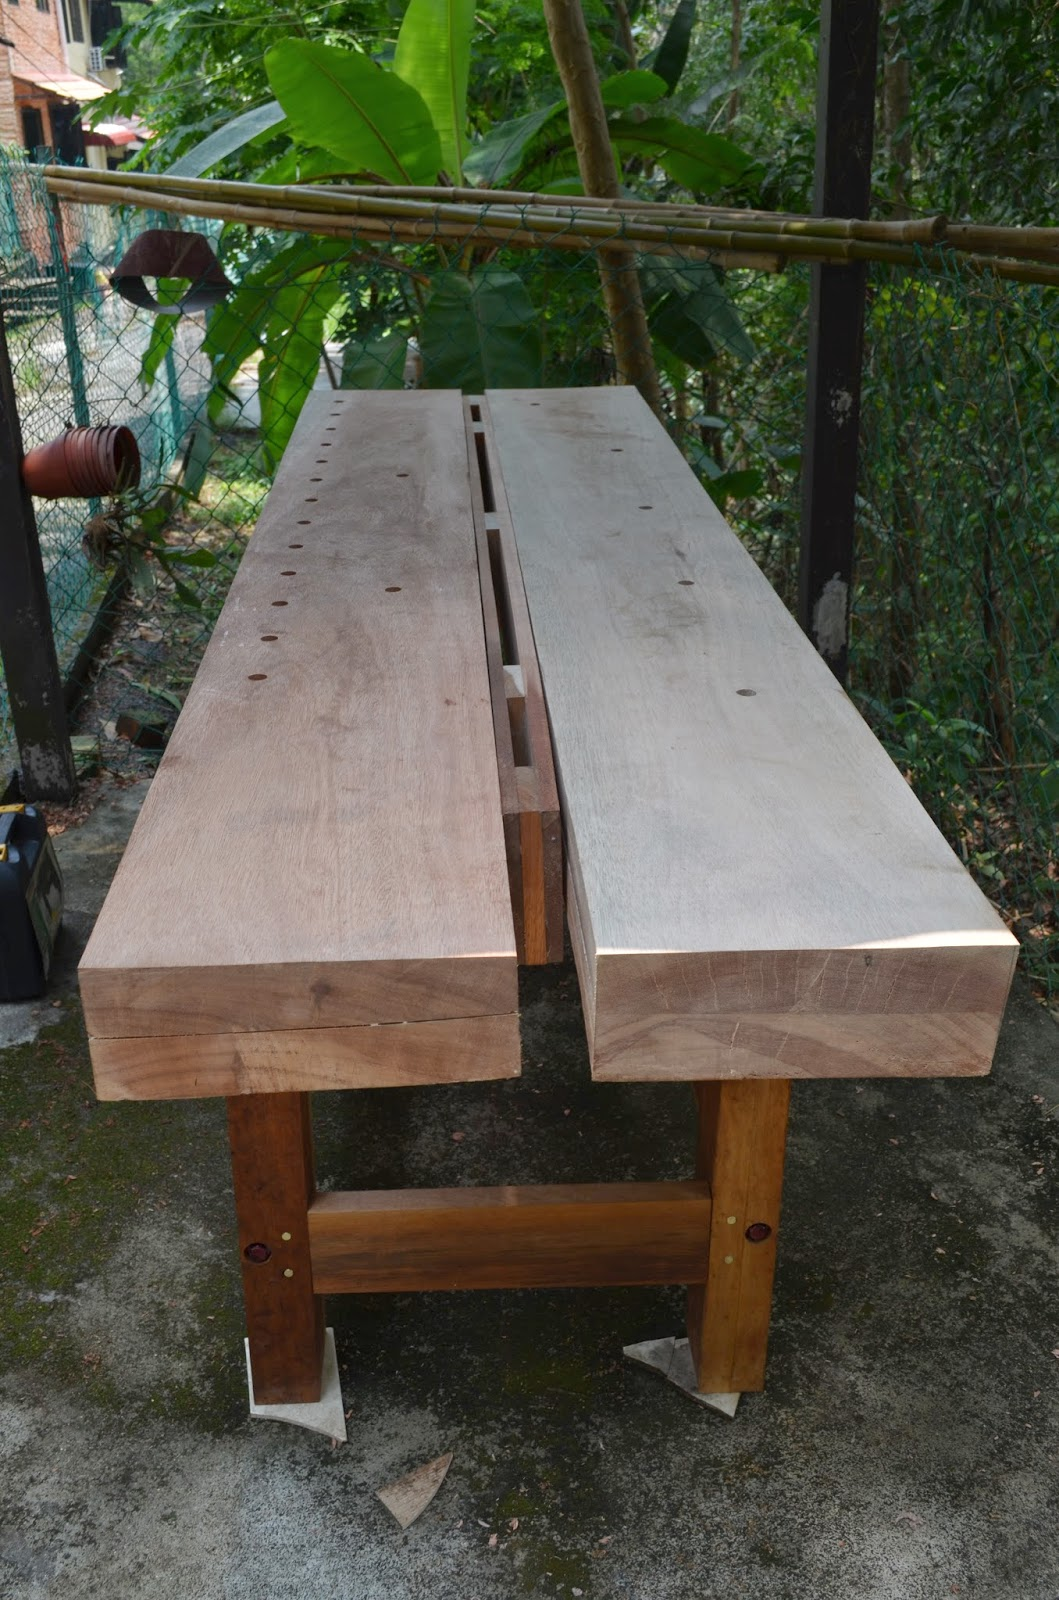 Sam's Tropical Roubo Workbench: March 2015